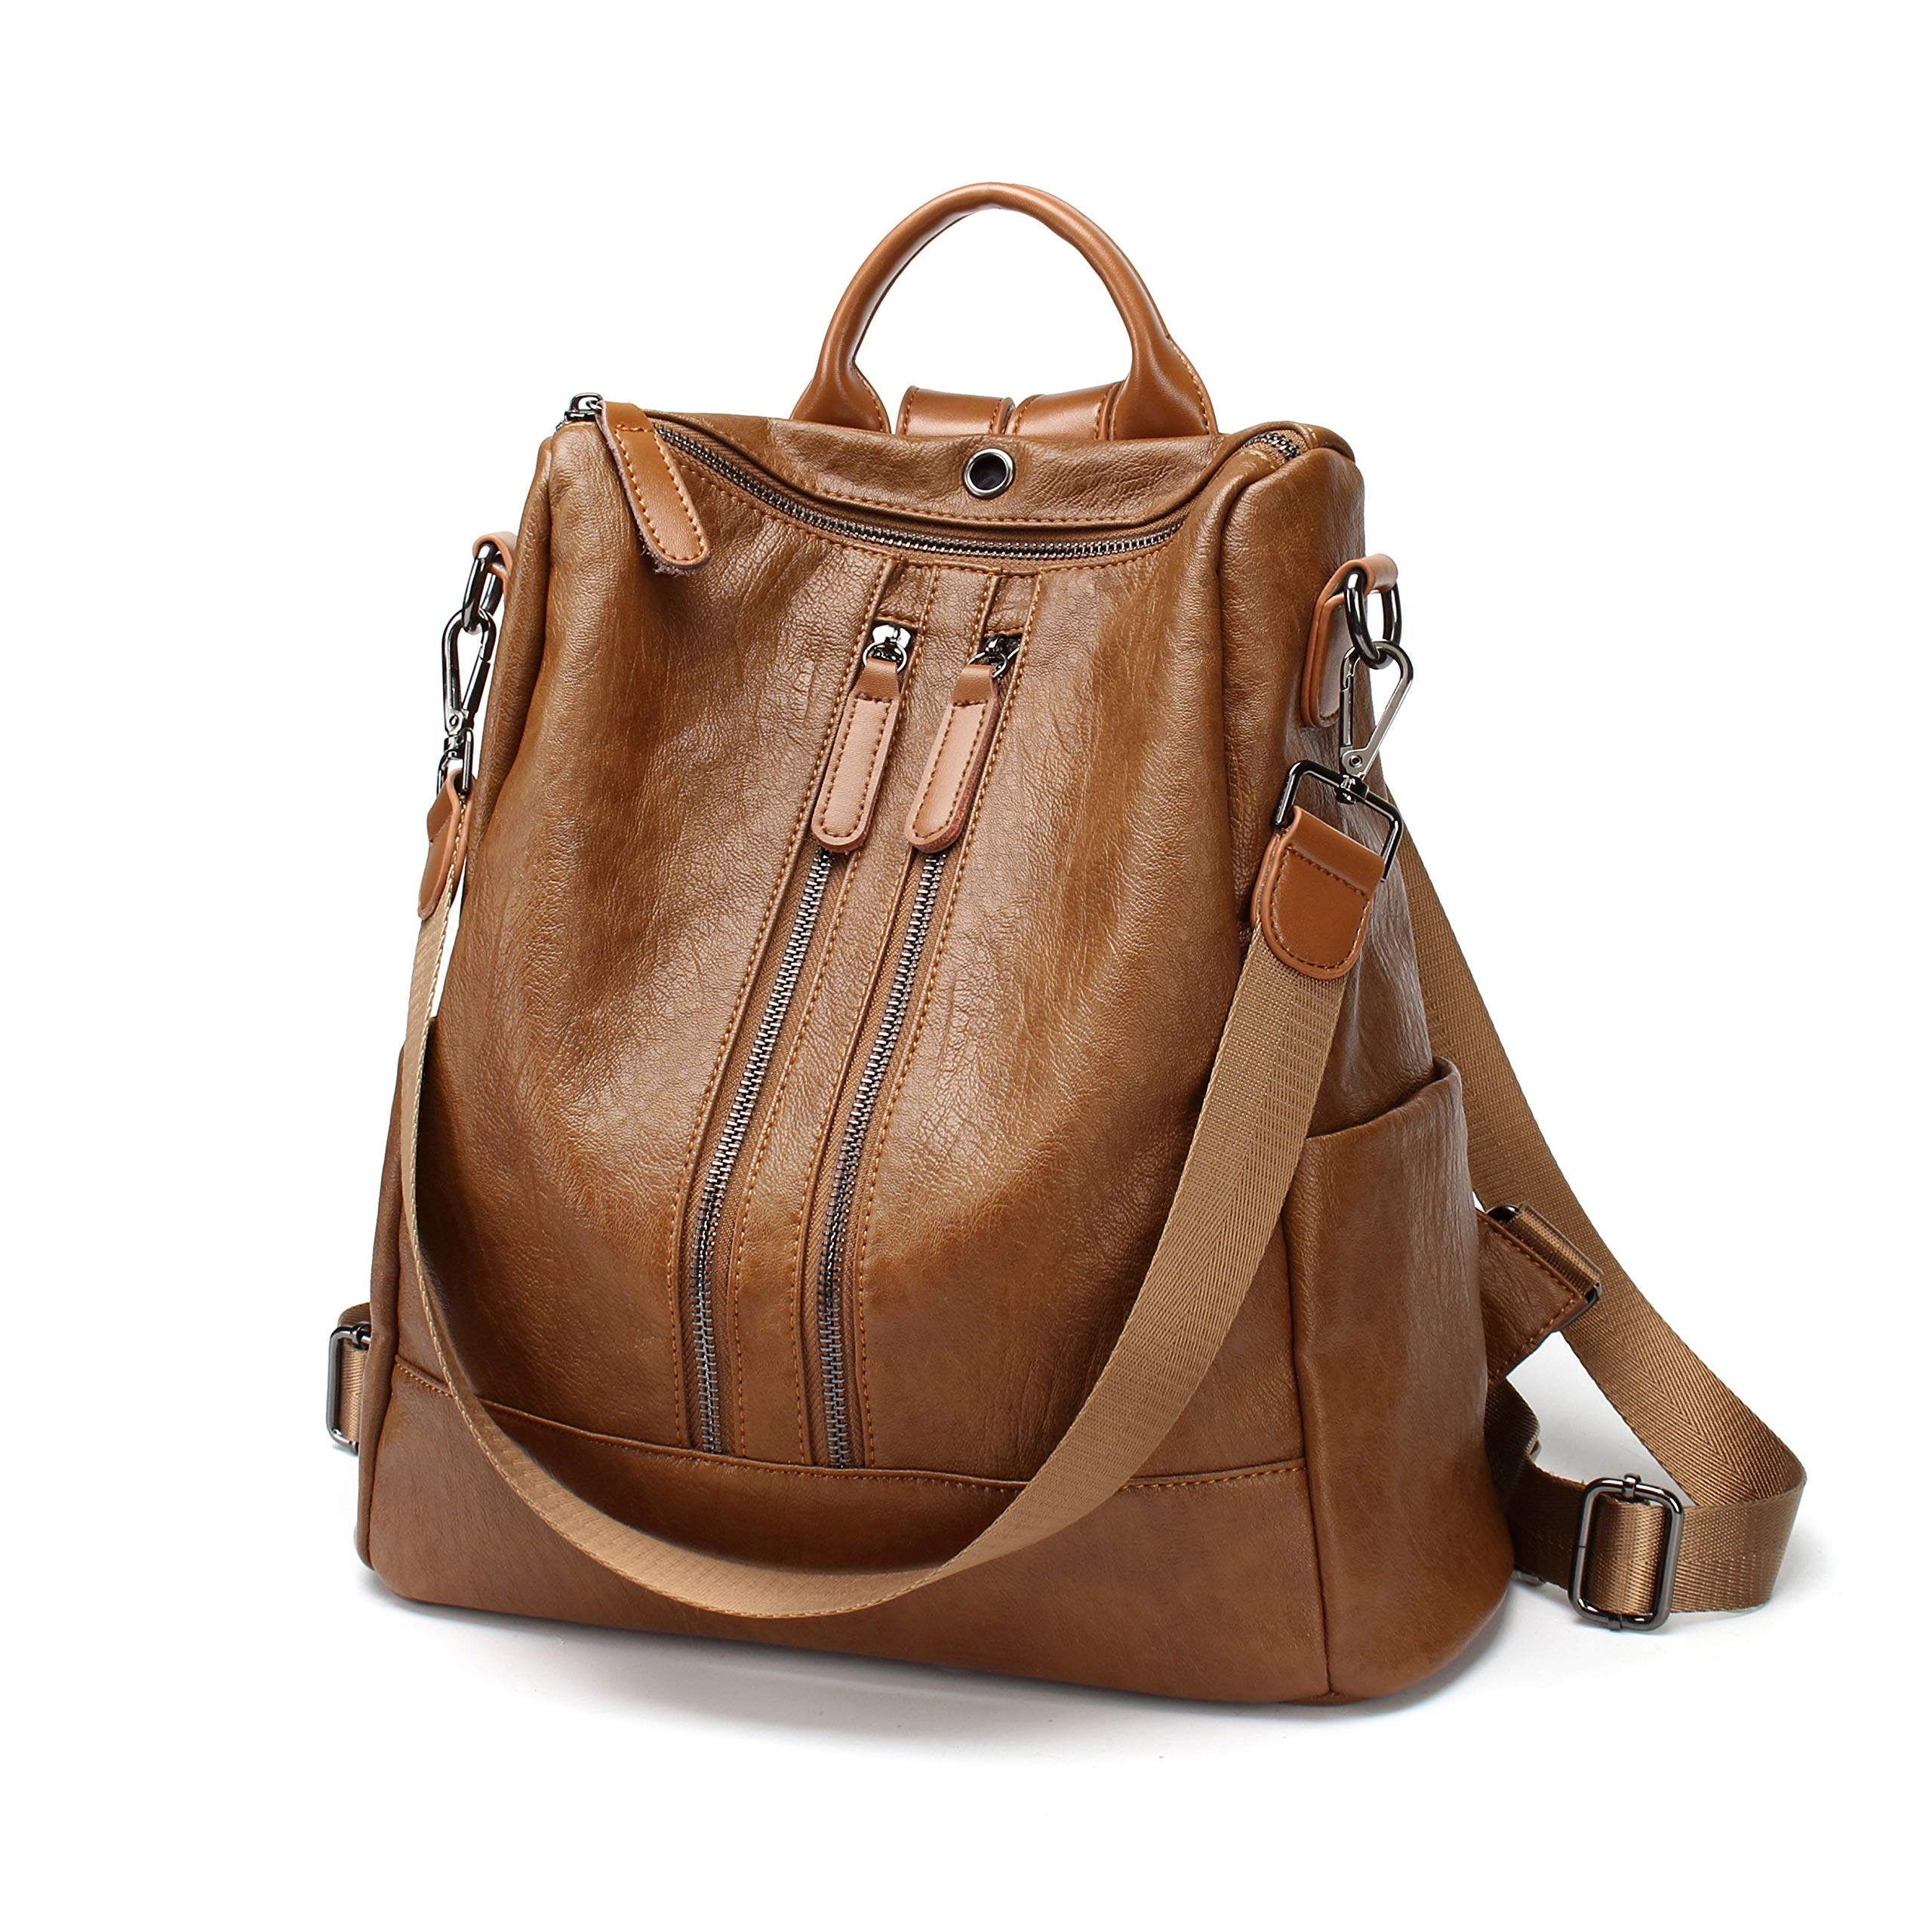 FIGROL Women Backpack Purse Soft PU Leather Casual Travel Bag Multi-Functional Waterproof Backpack with Headset Datecable Port(Brown)